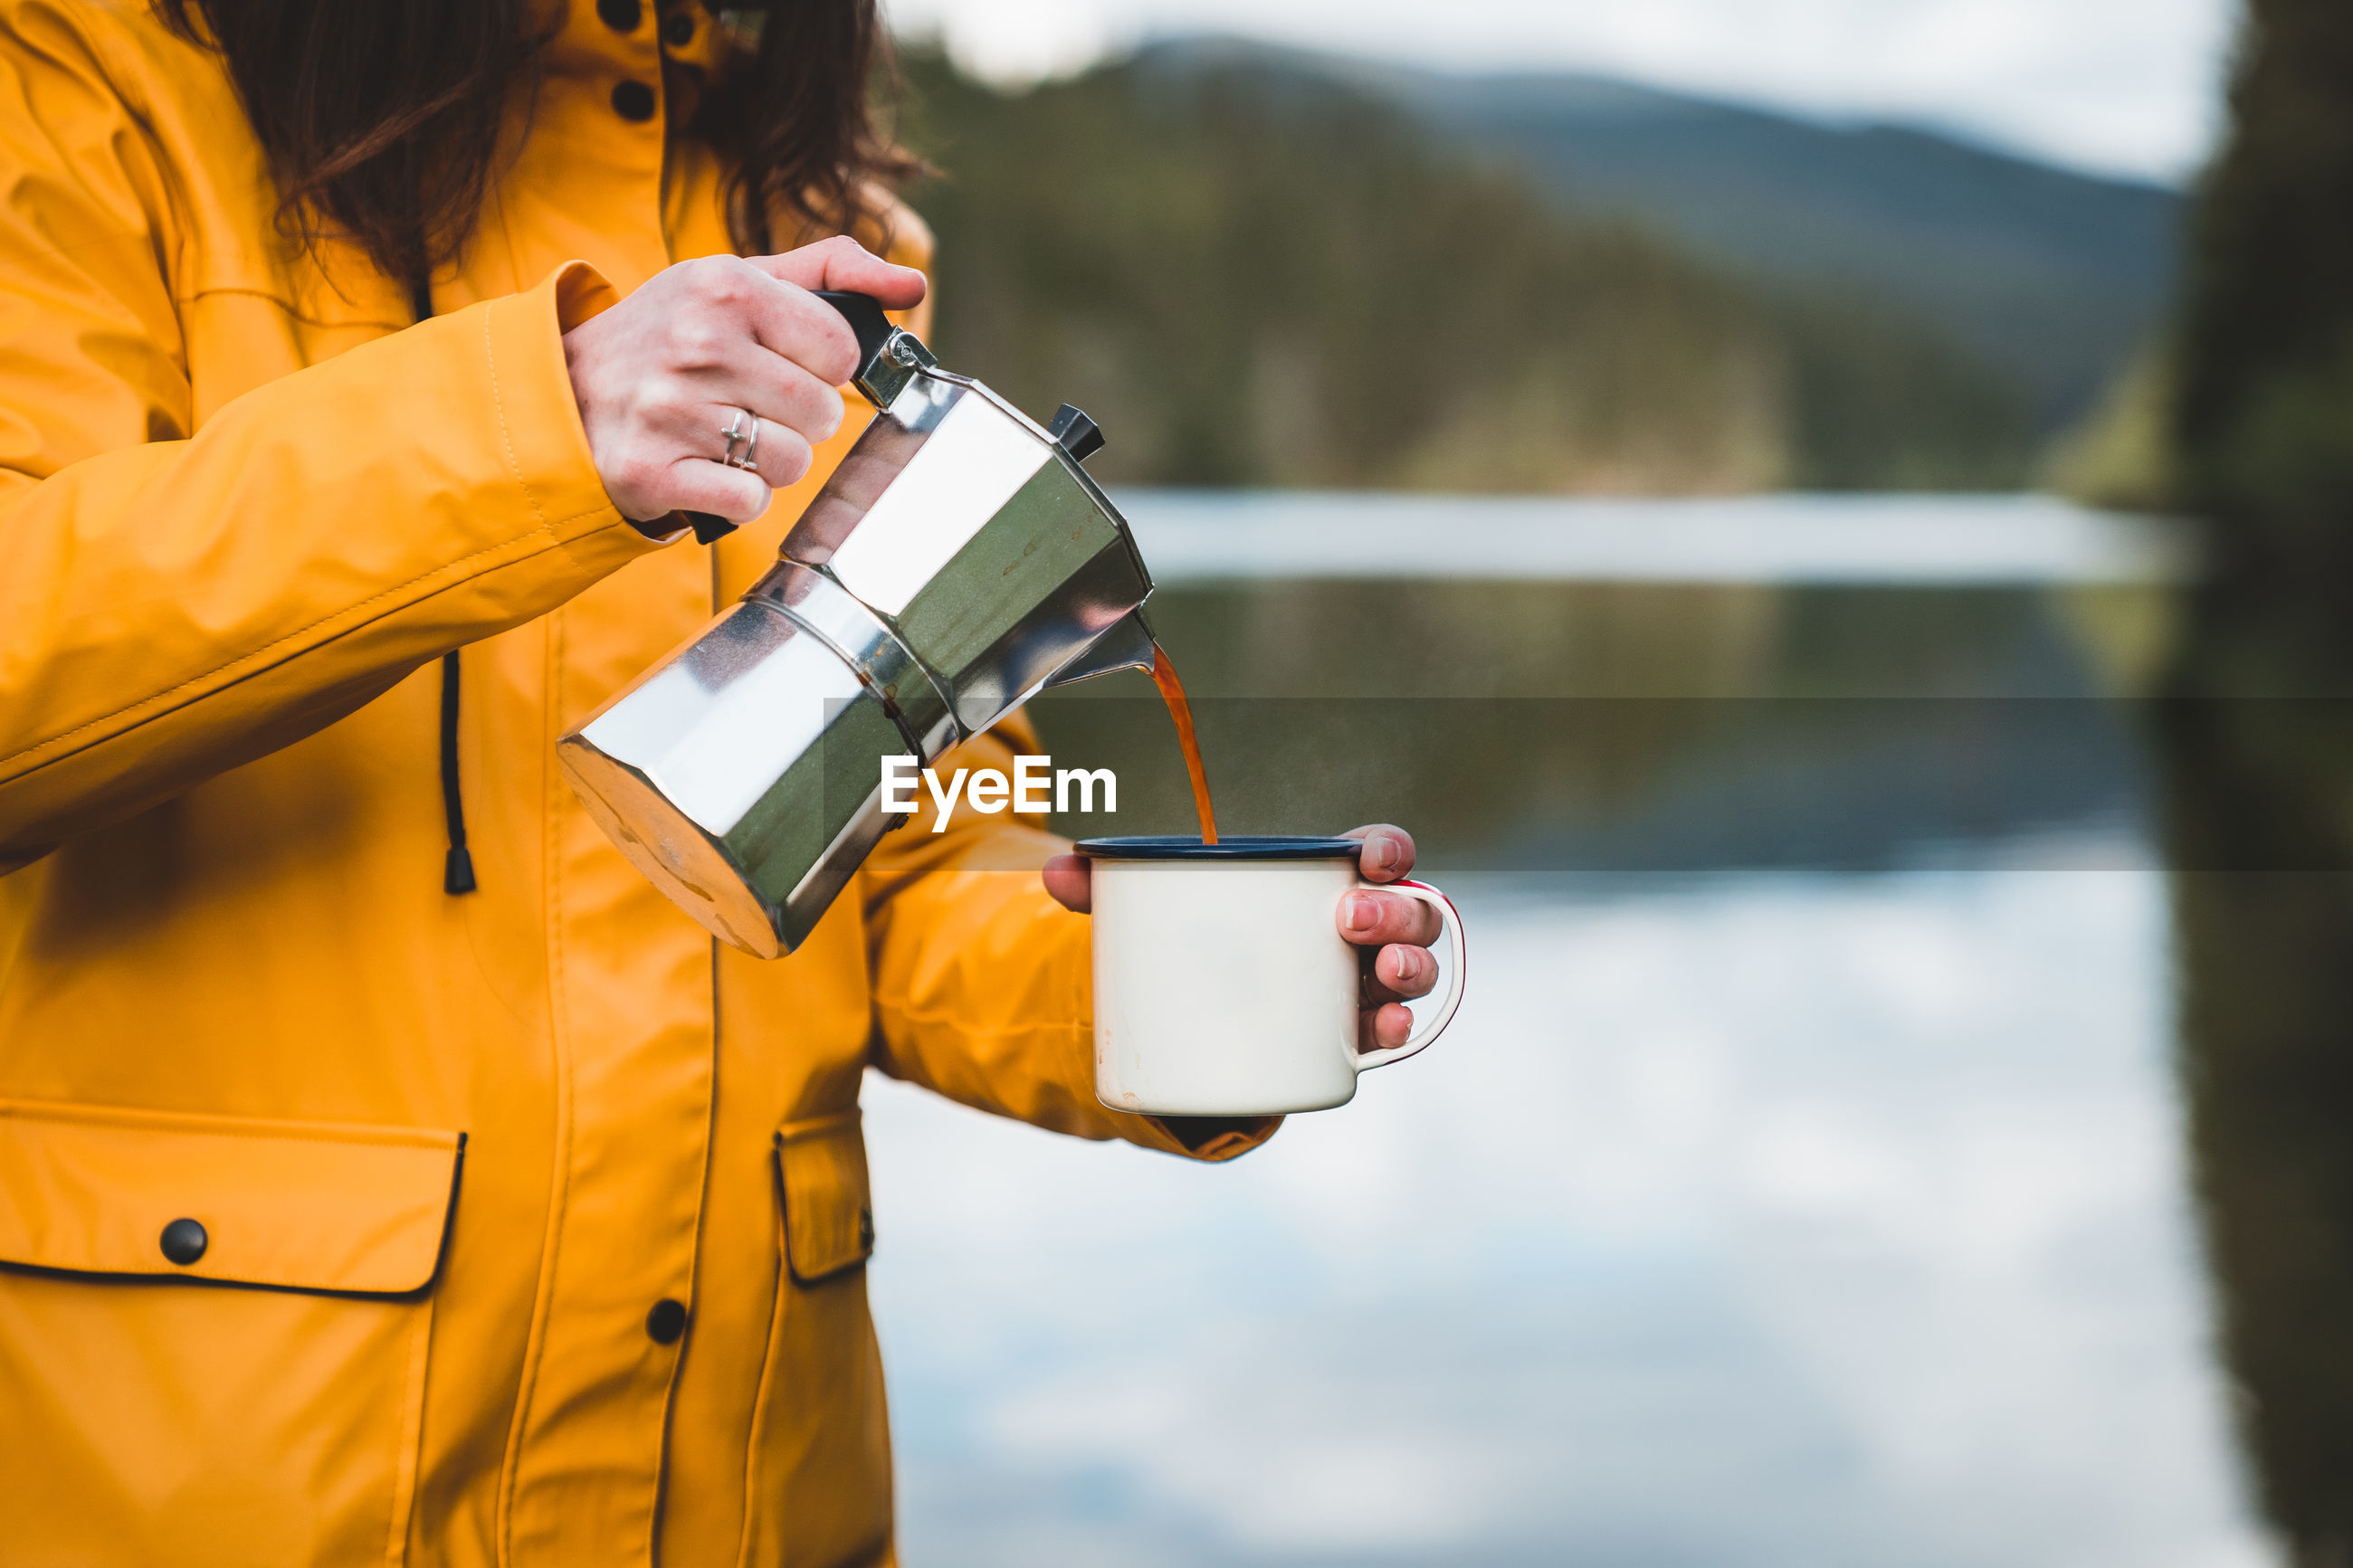 Hipster woman wearing yellow jacket pours coffee into outdoor mug from a geyser coffee maker